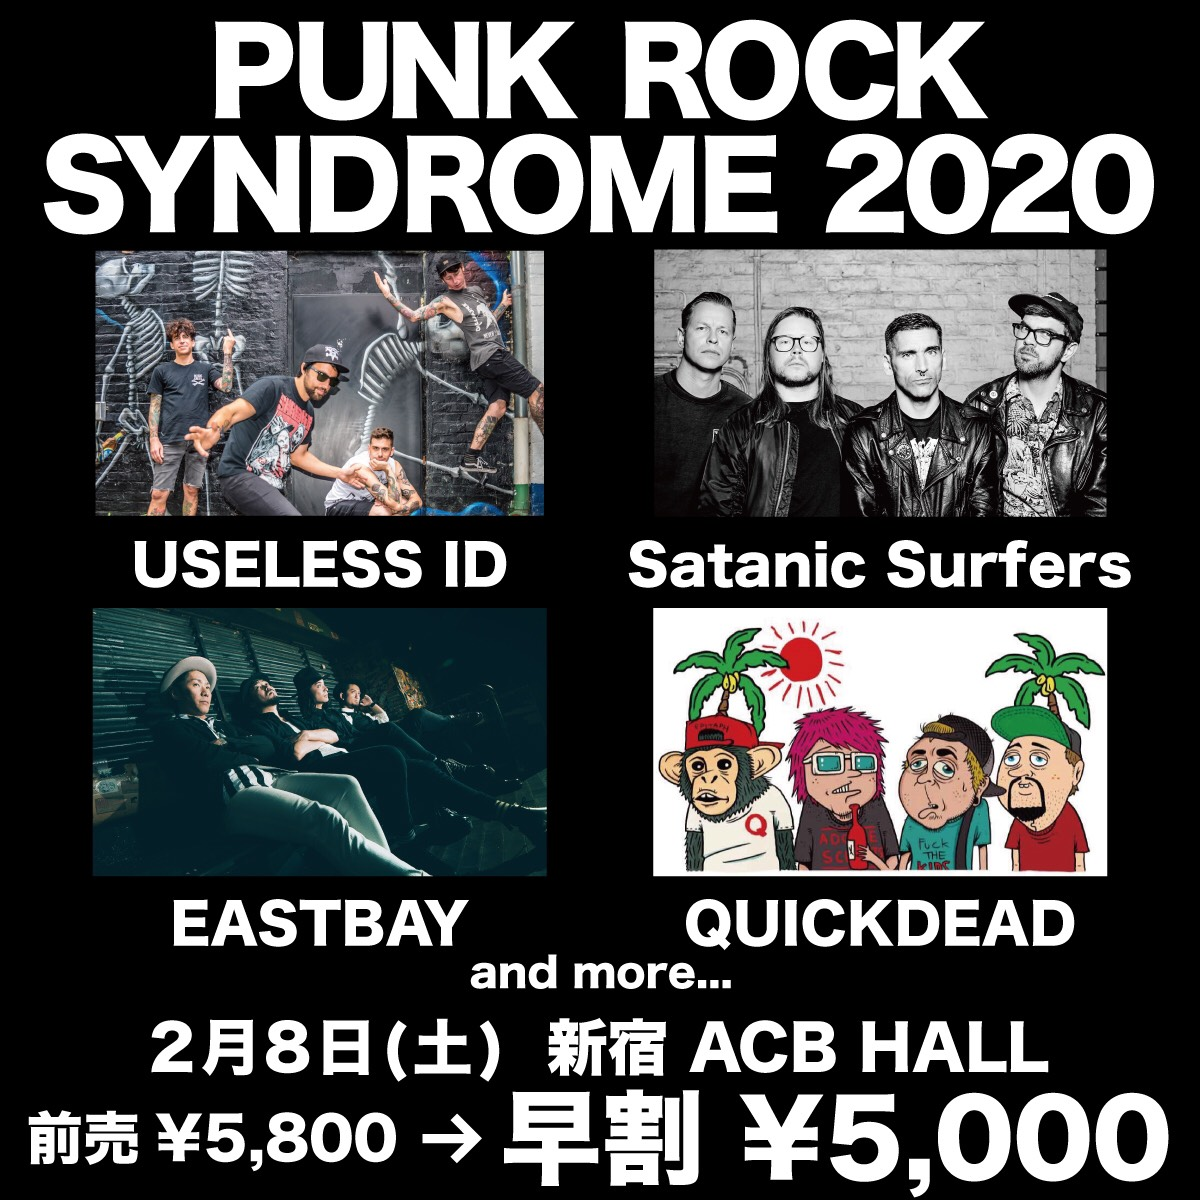 PUNK ROCK SYNDROME 2020の写真